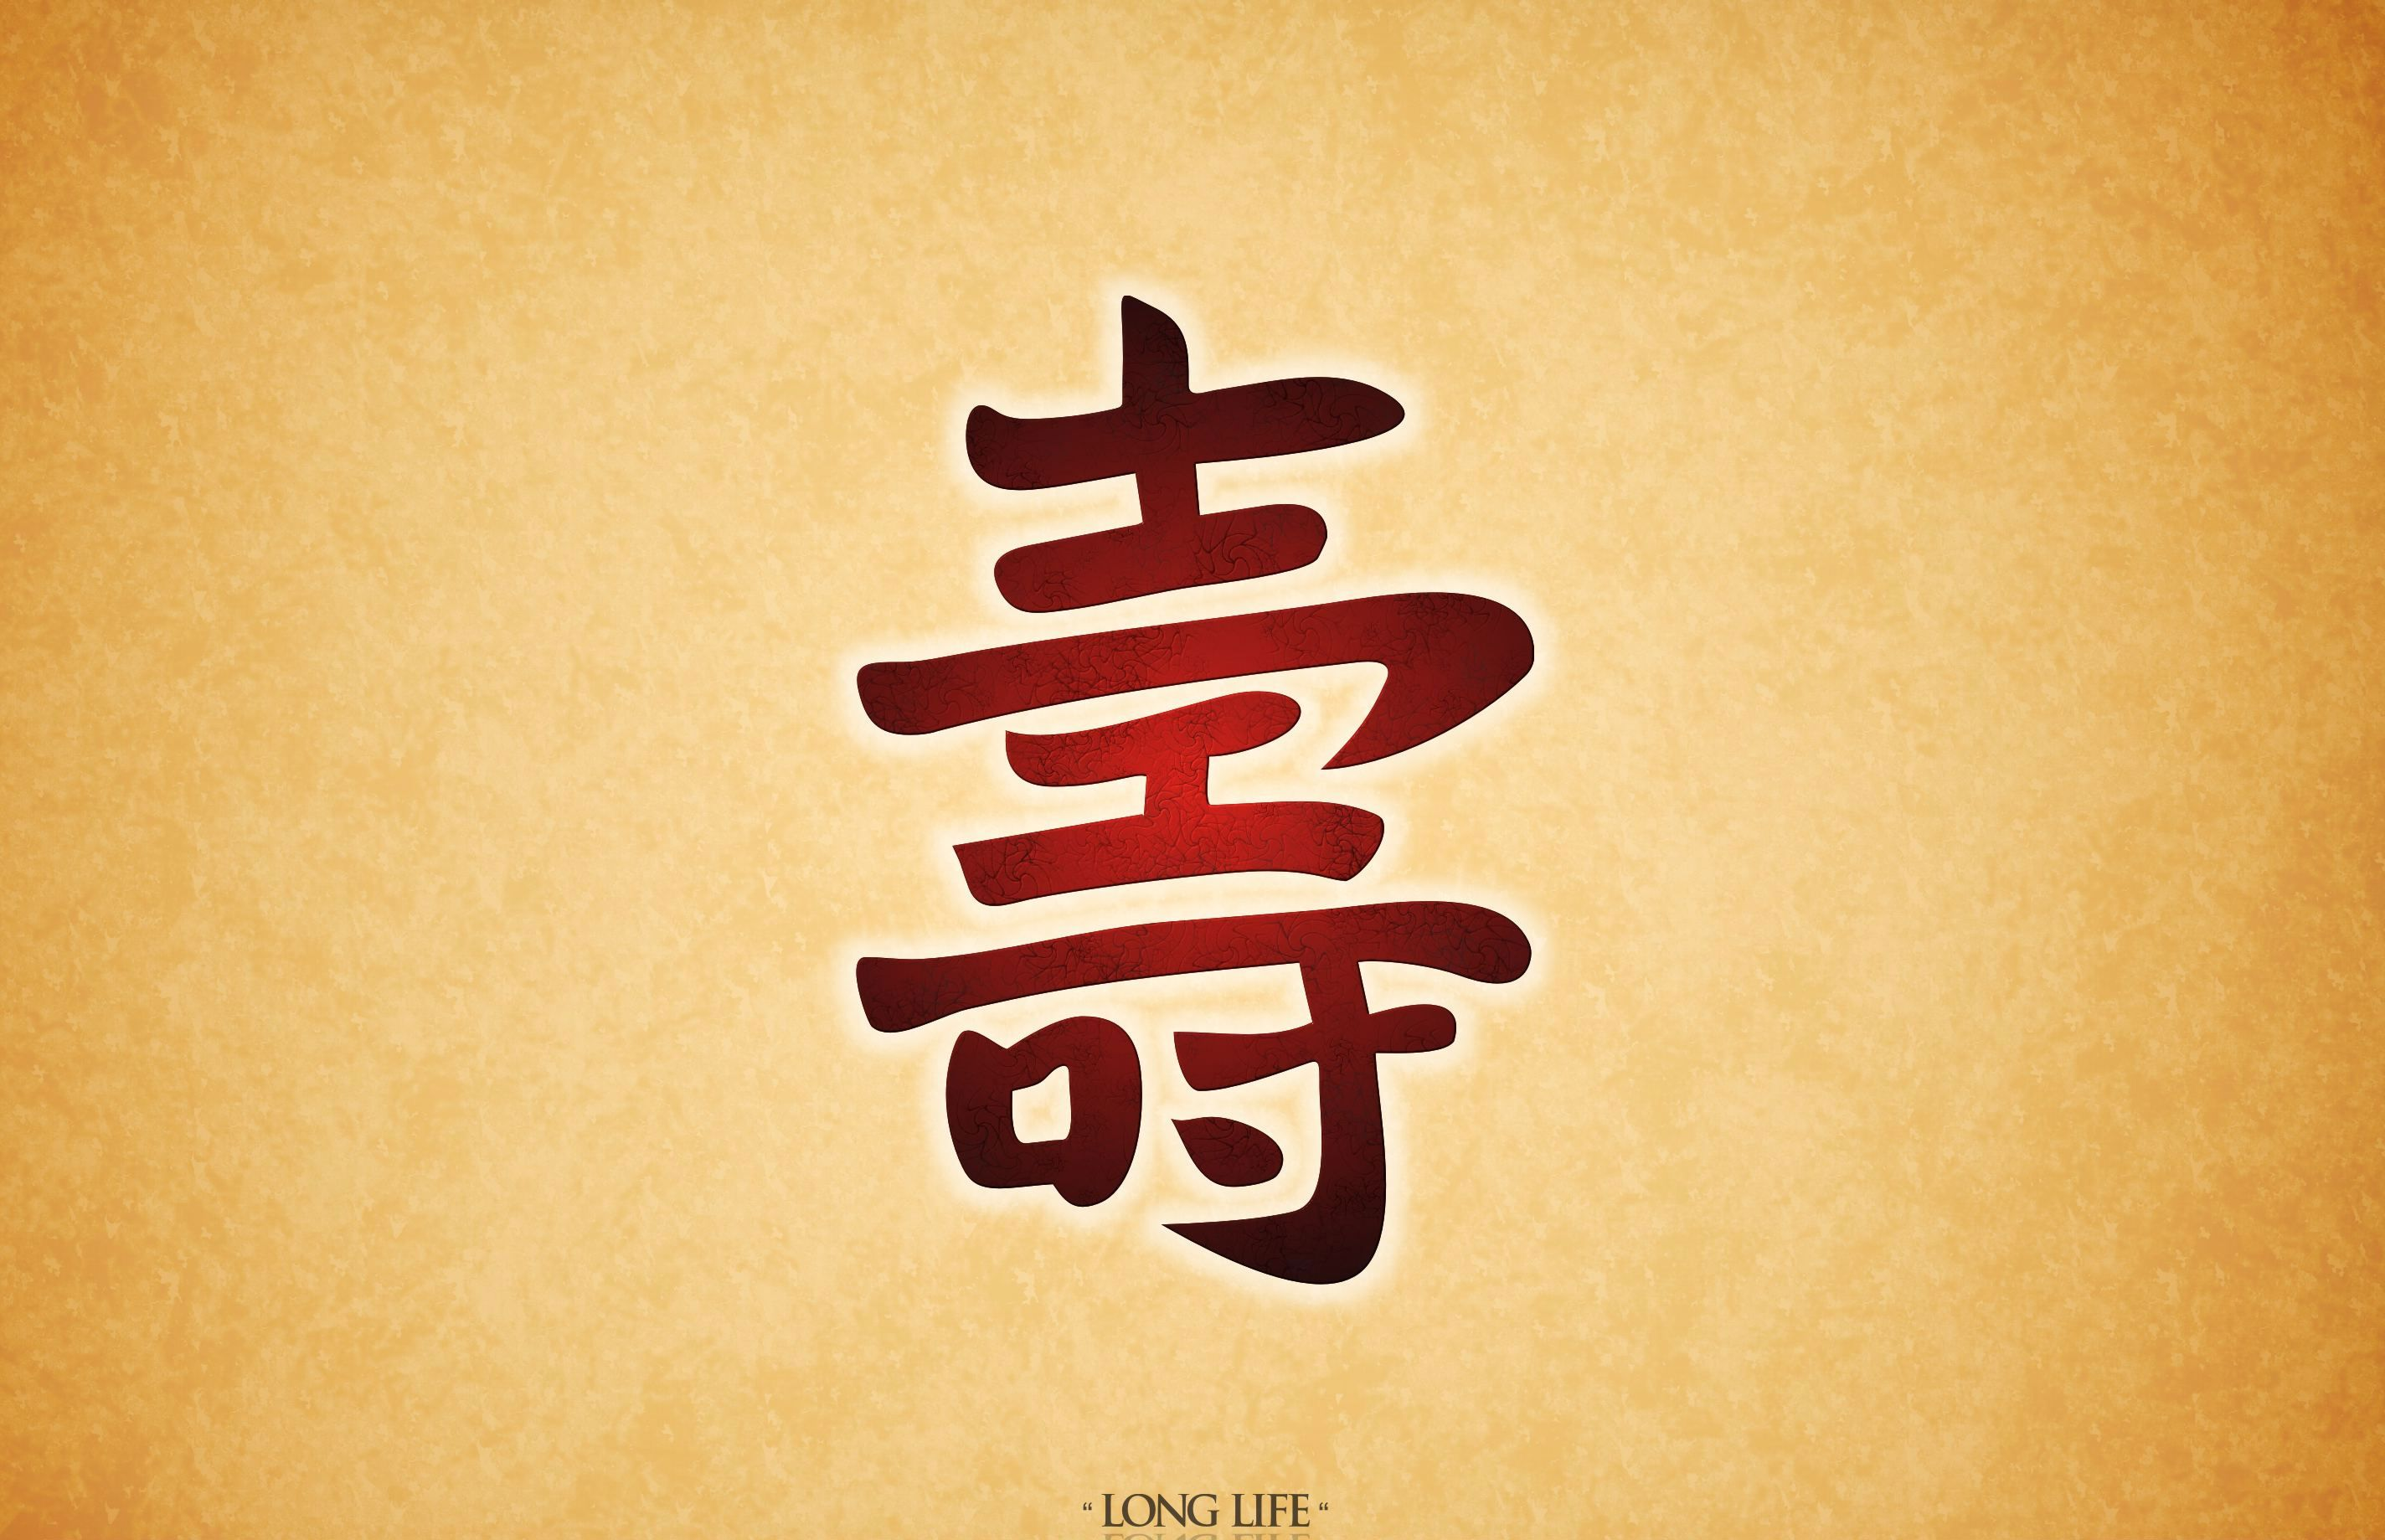 2848x1839 long life in chinese HD Wallpaper | Background Image | 2848x1839 ...